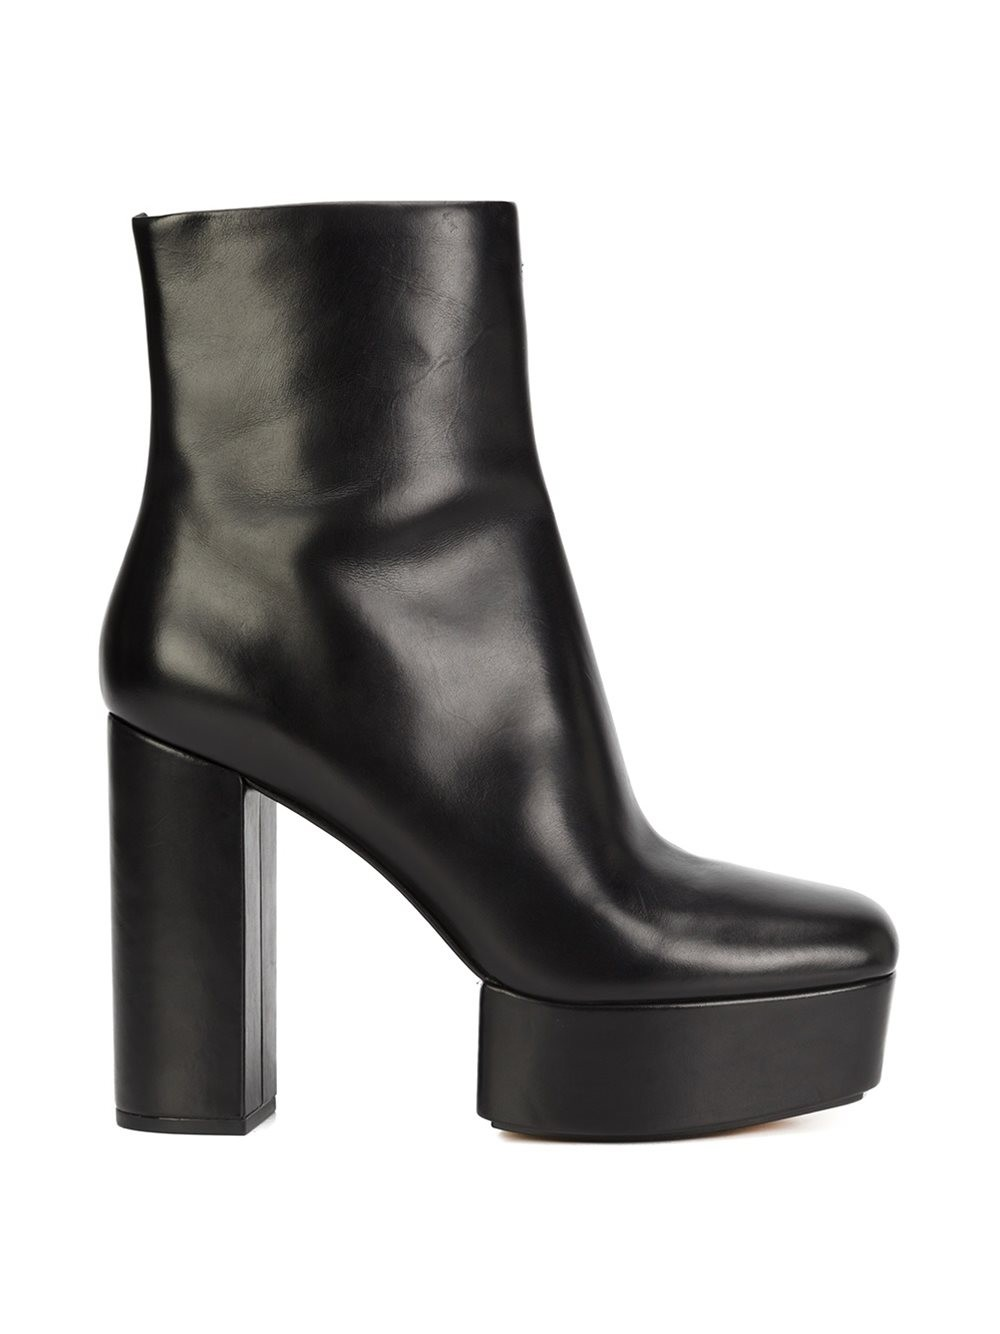 ALEXANDER WANG Cora Leather Platform Ankle Boots at THE WEBSTER